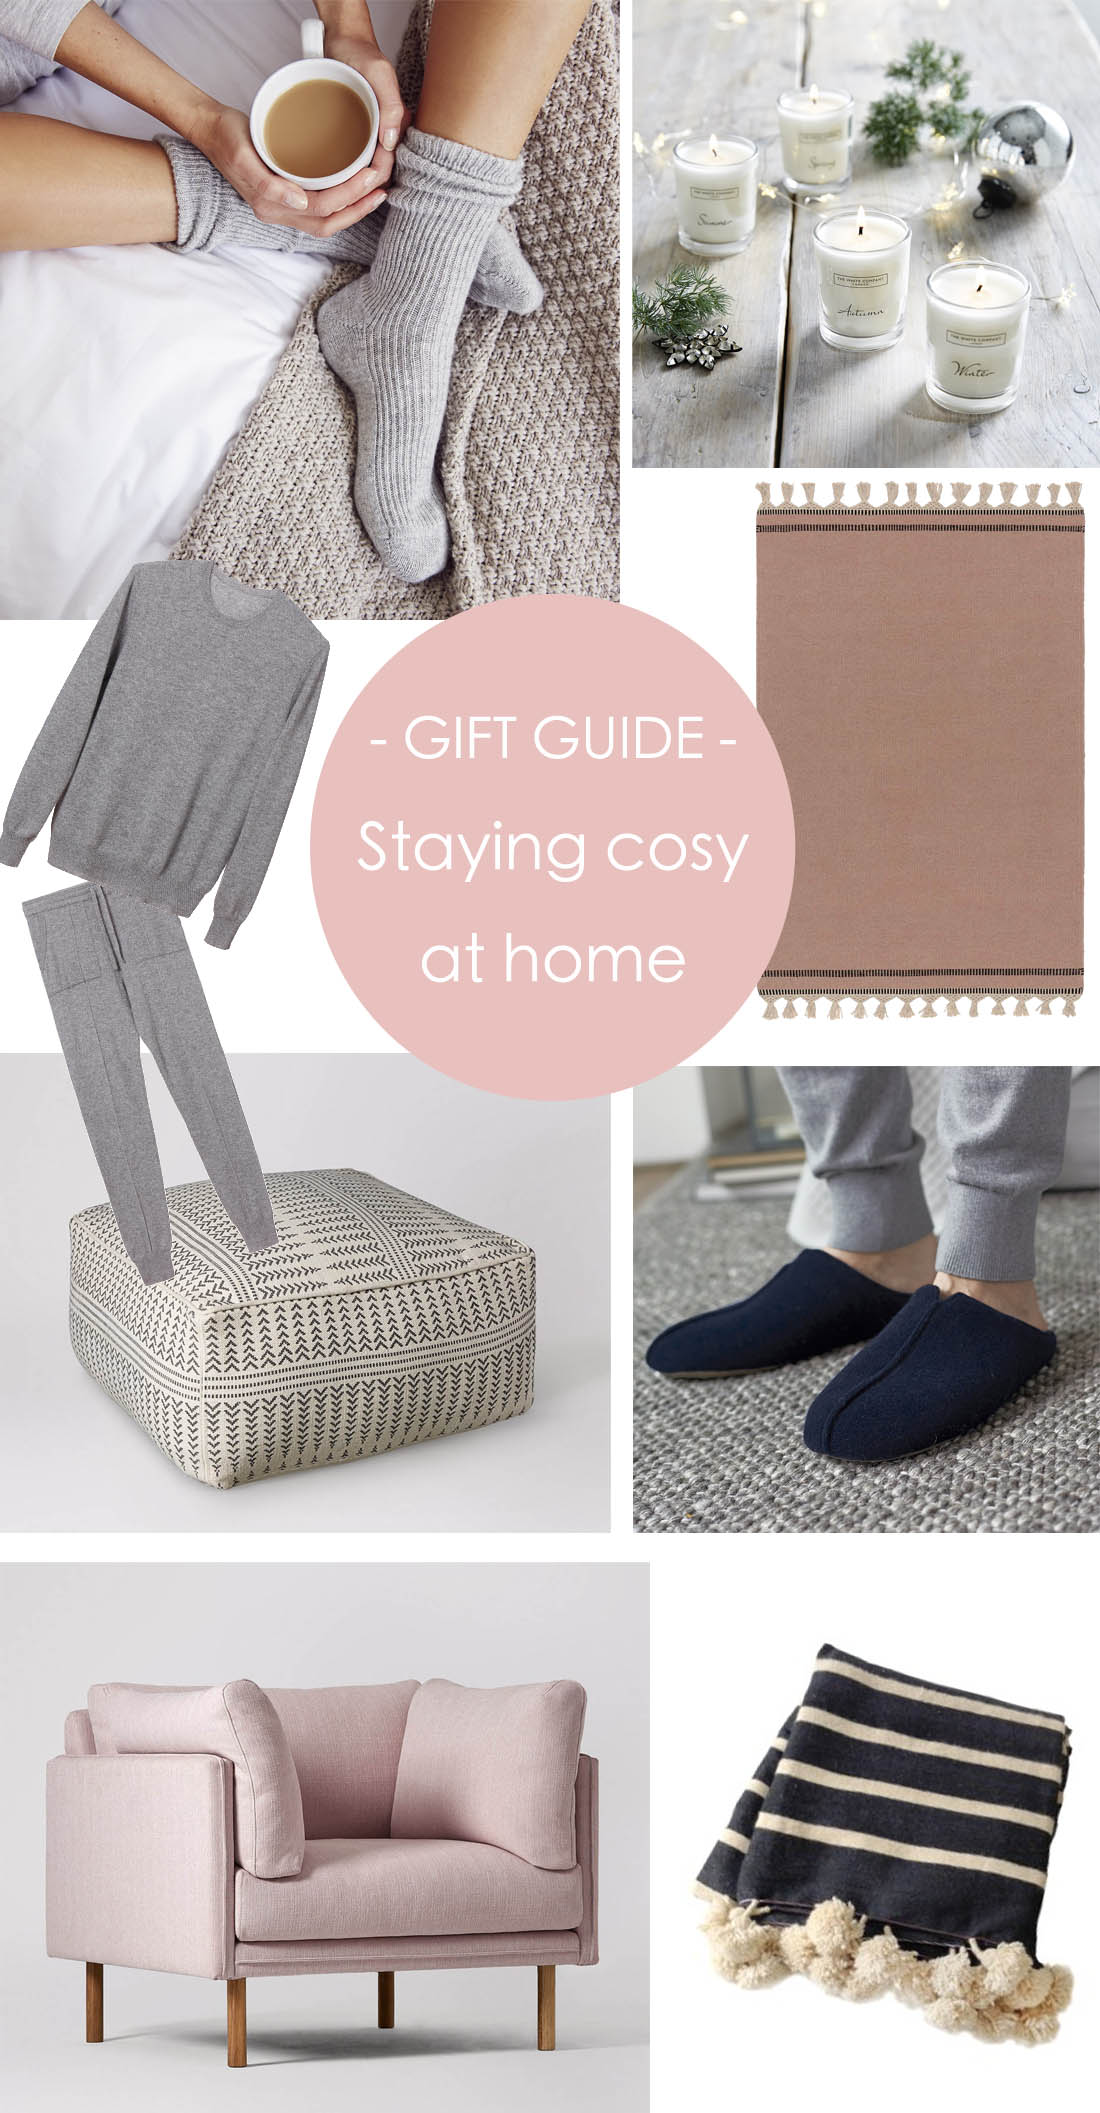 Christmas gift guide - cosying up at home | Apartment Apothecary |